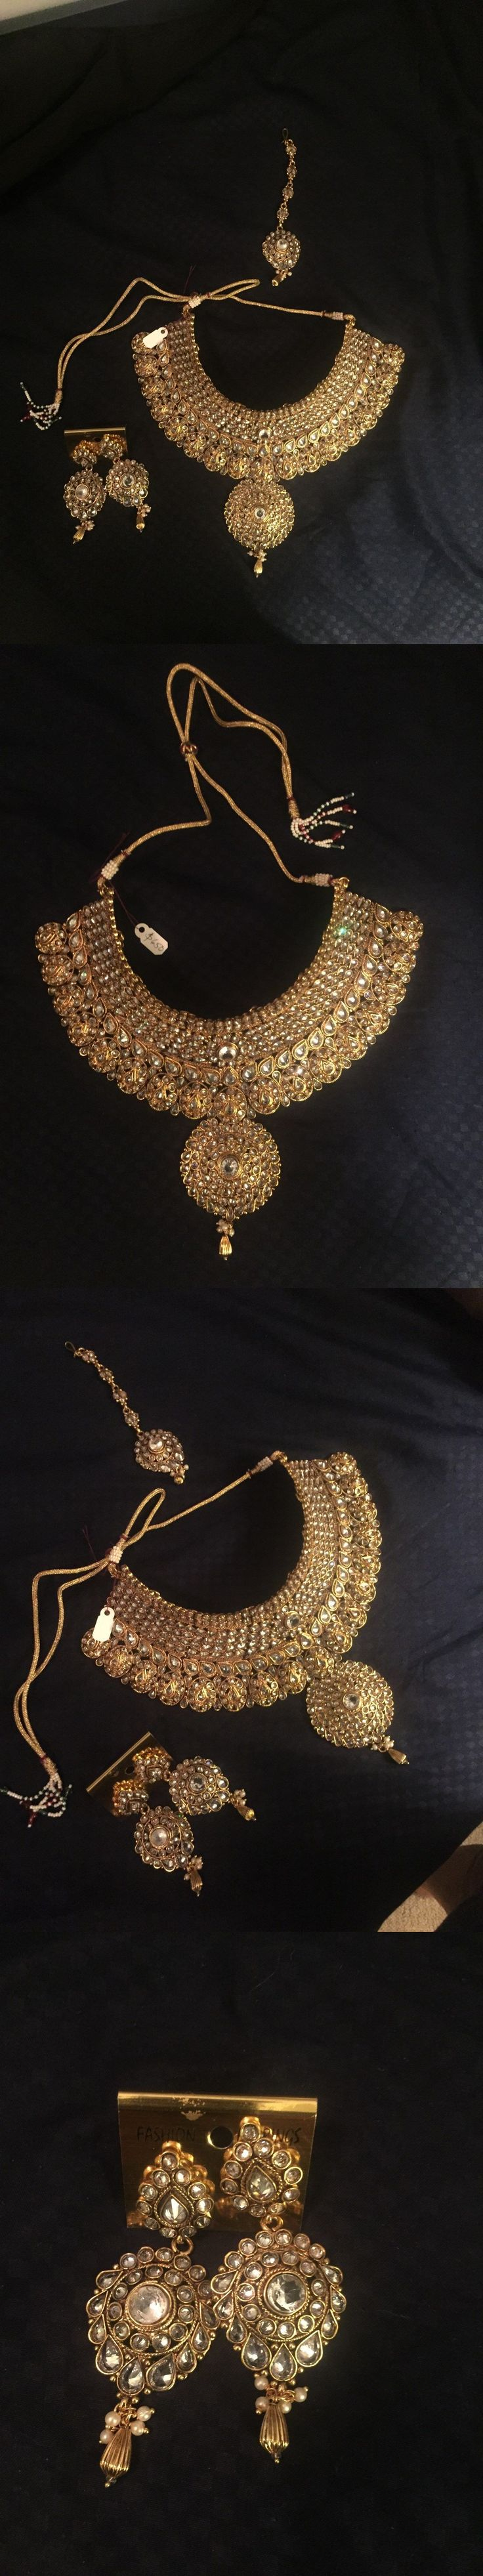 Other Asian E Indian Jewelry 11313: Indian Bridal Jewelry Set -> BUY IT NOW ONLY: $150.0 on eBay!